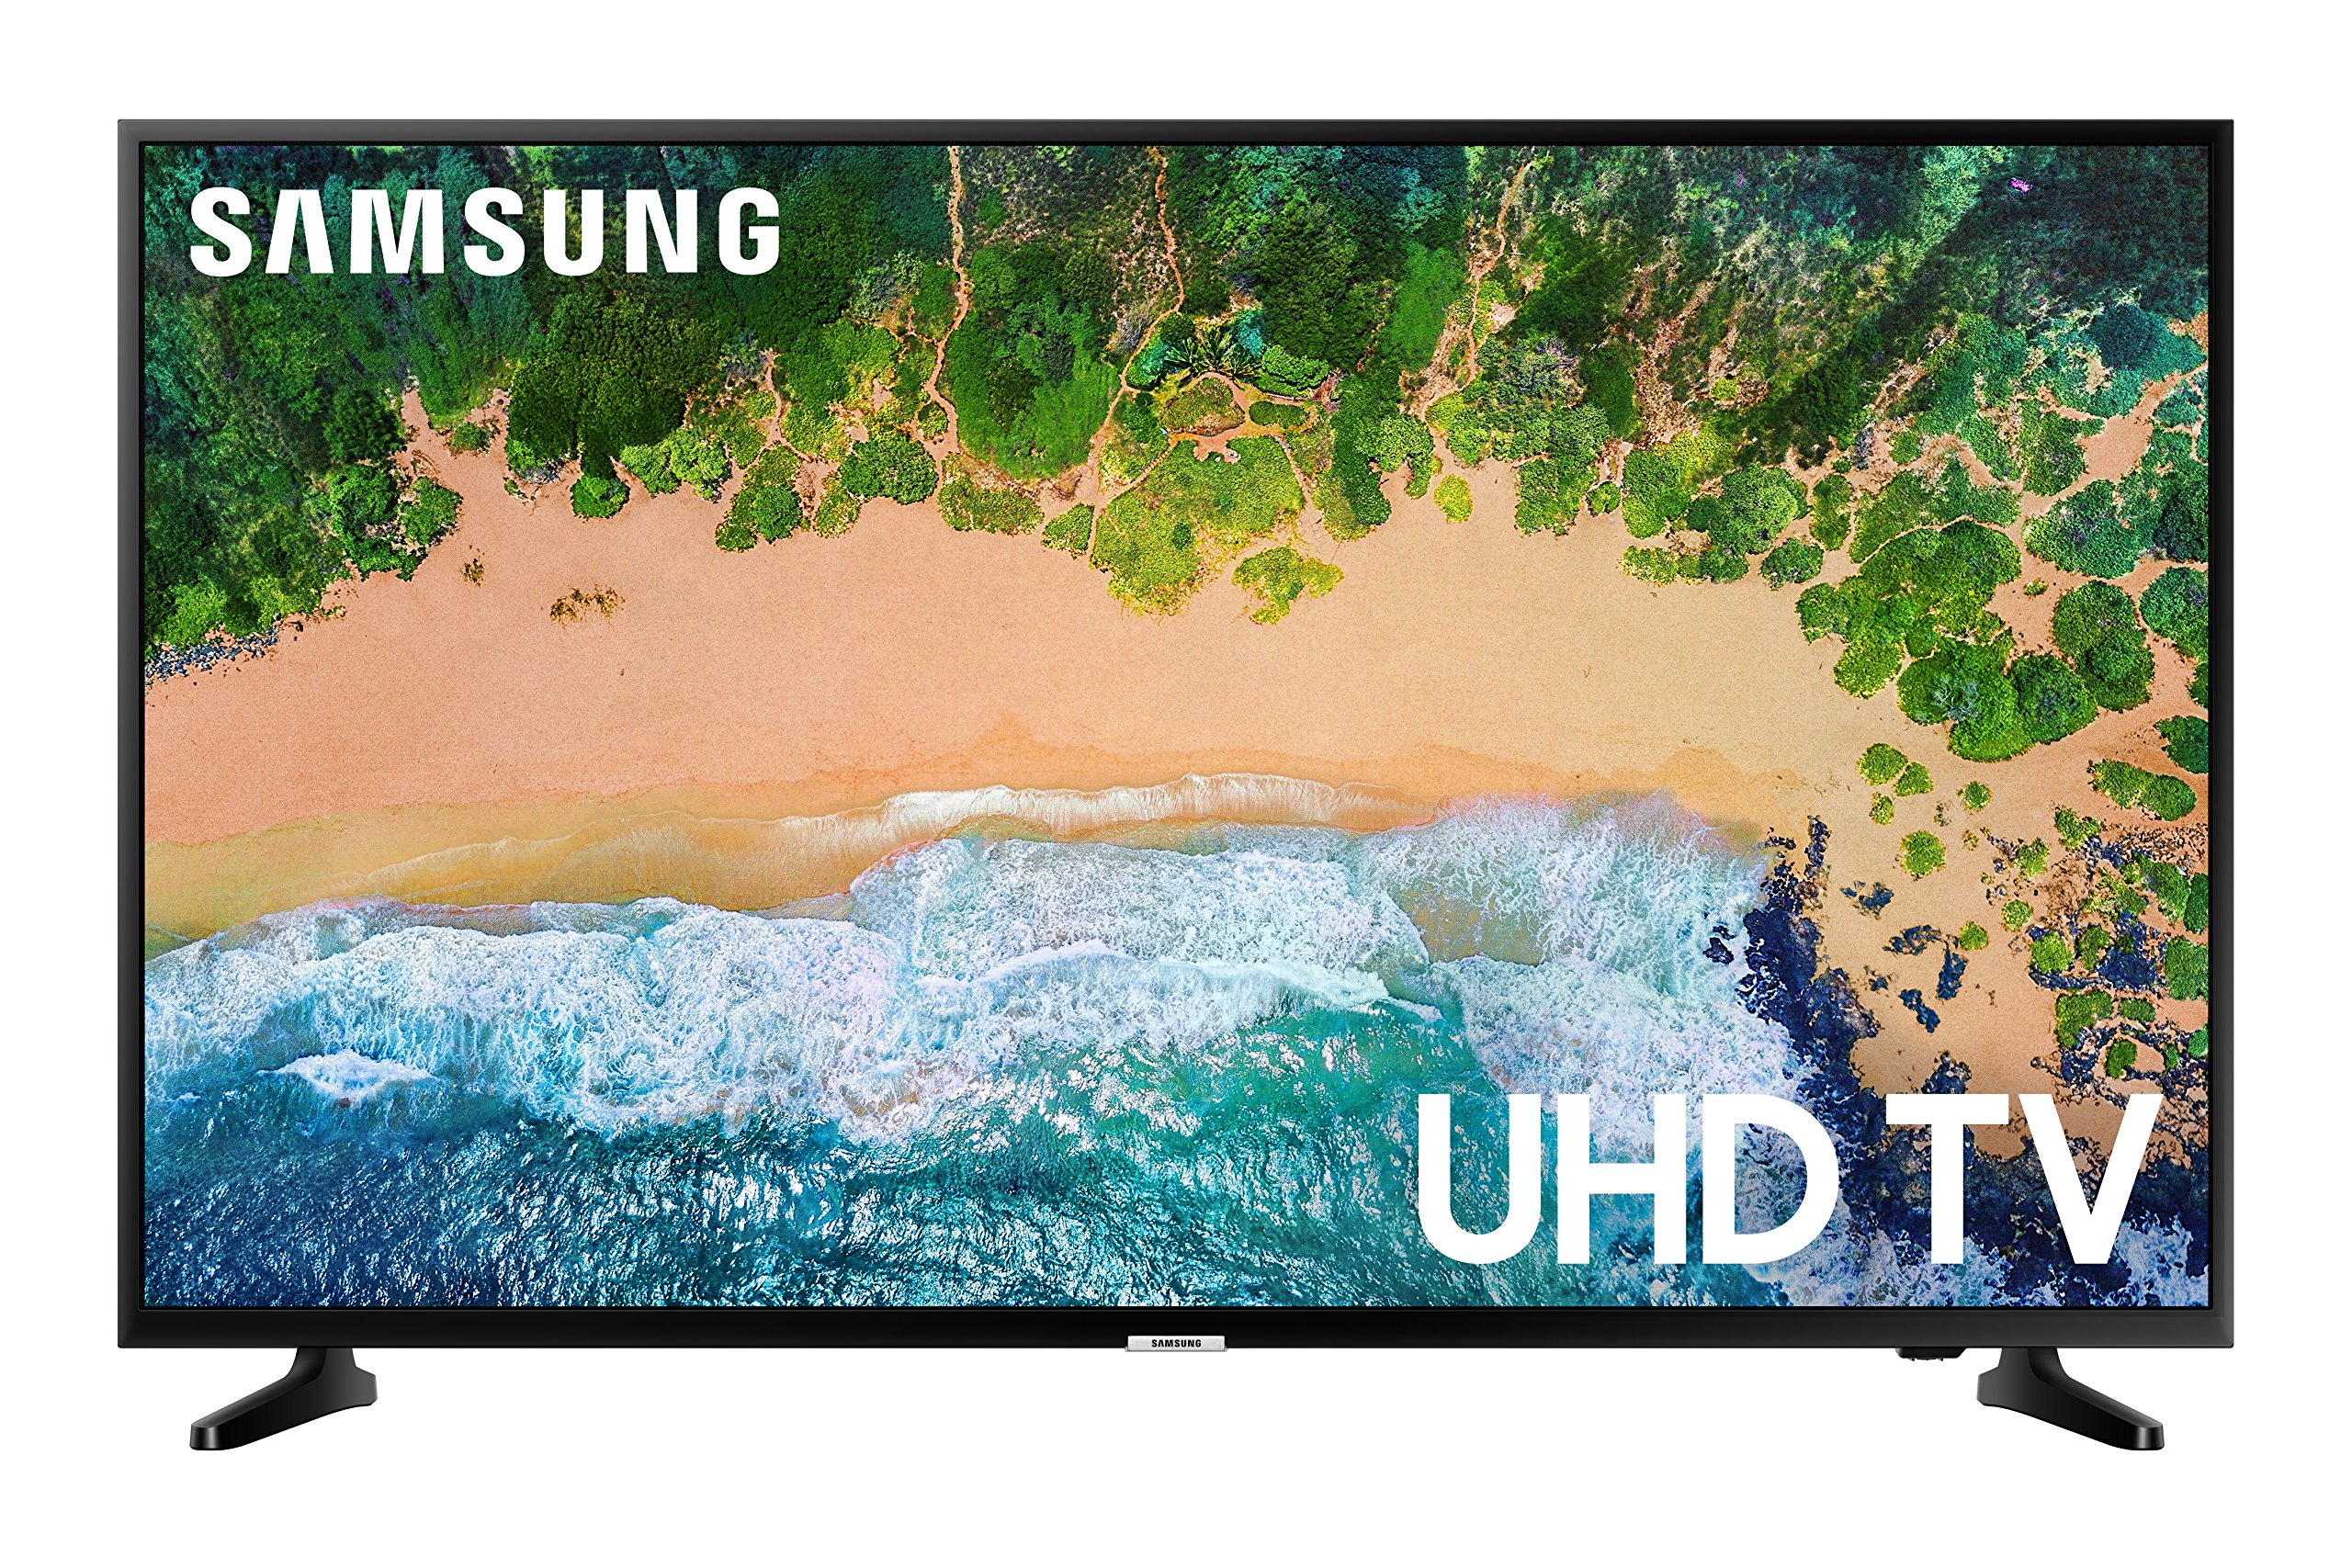 Samsung Electronics 4K Smart LED TV (2018), 43'' (UN43NU6900FXZA) by Samsung